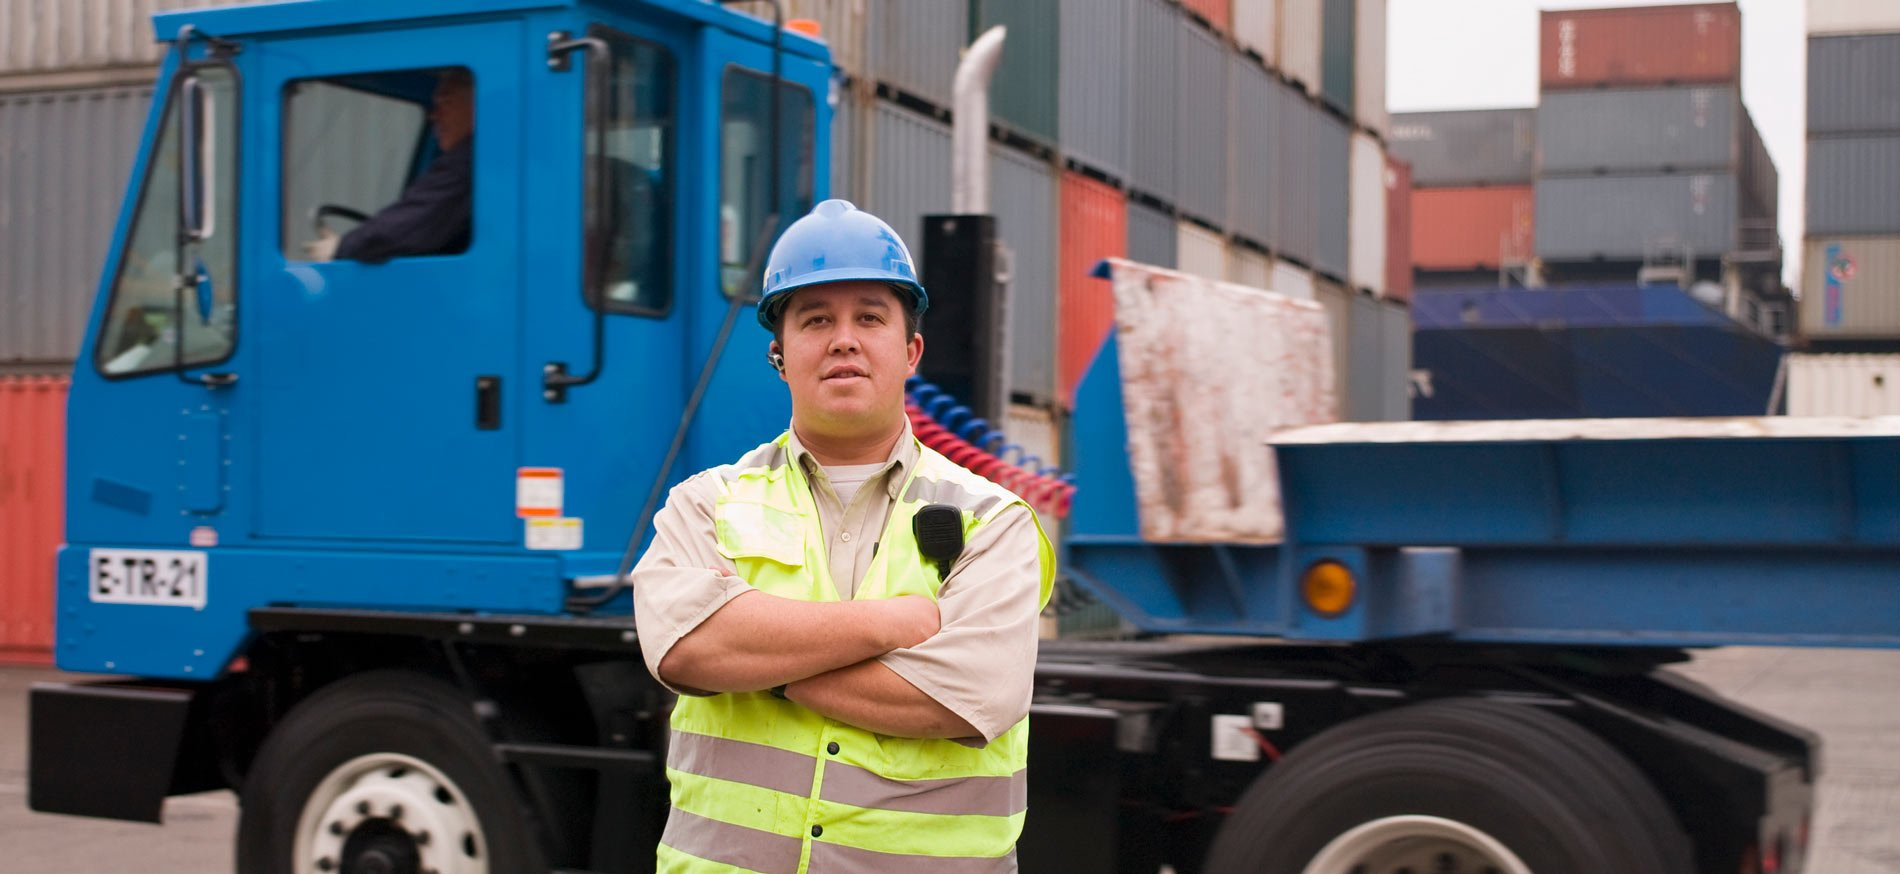 worker with truck and cargo